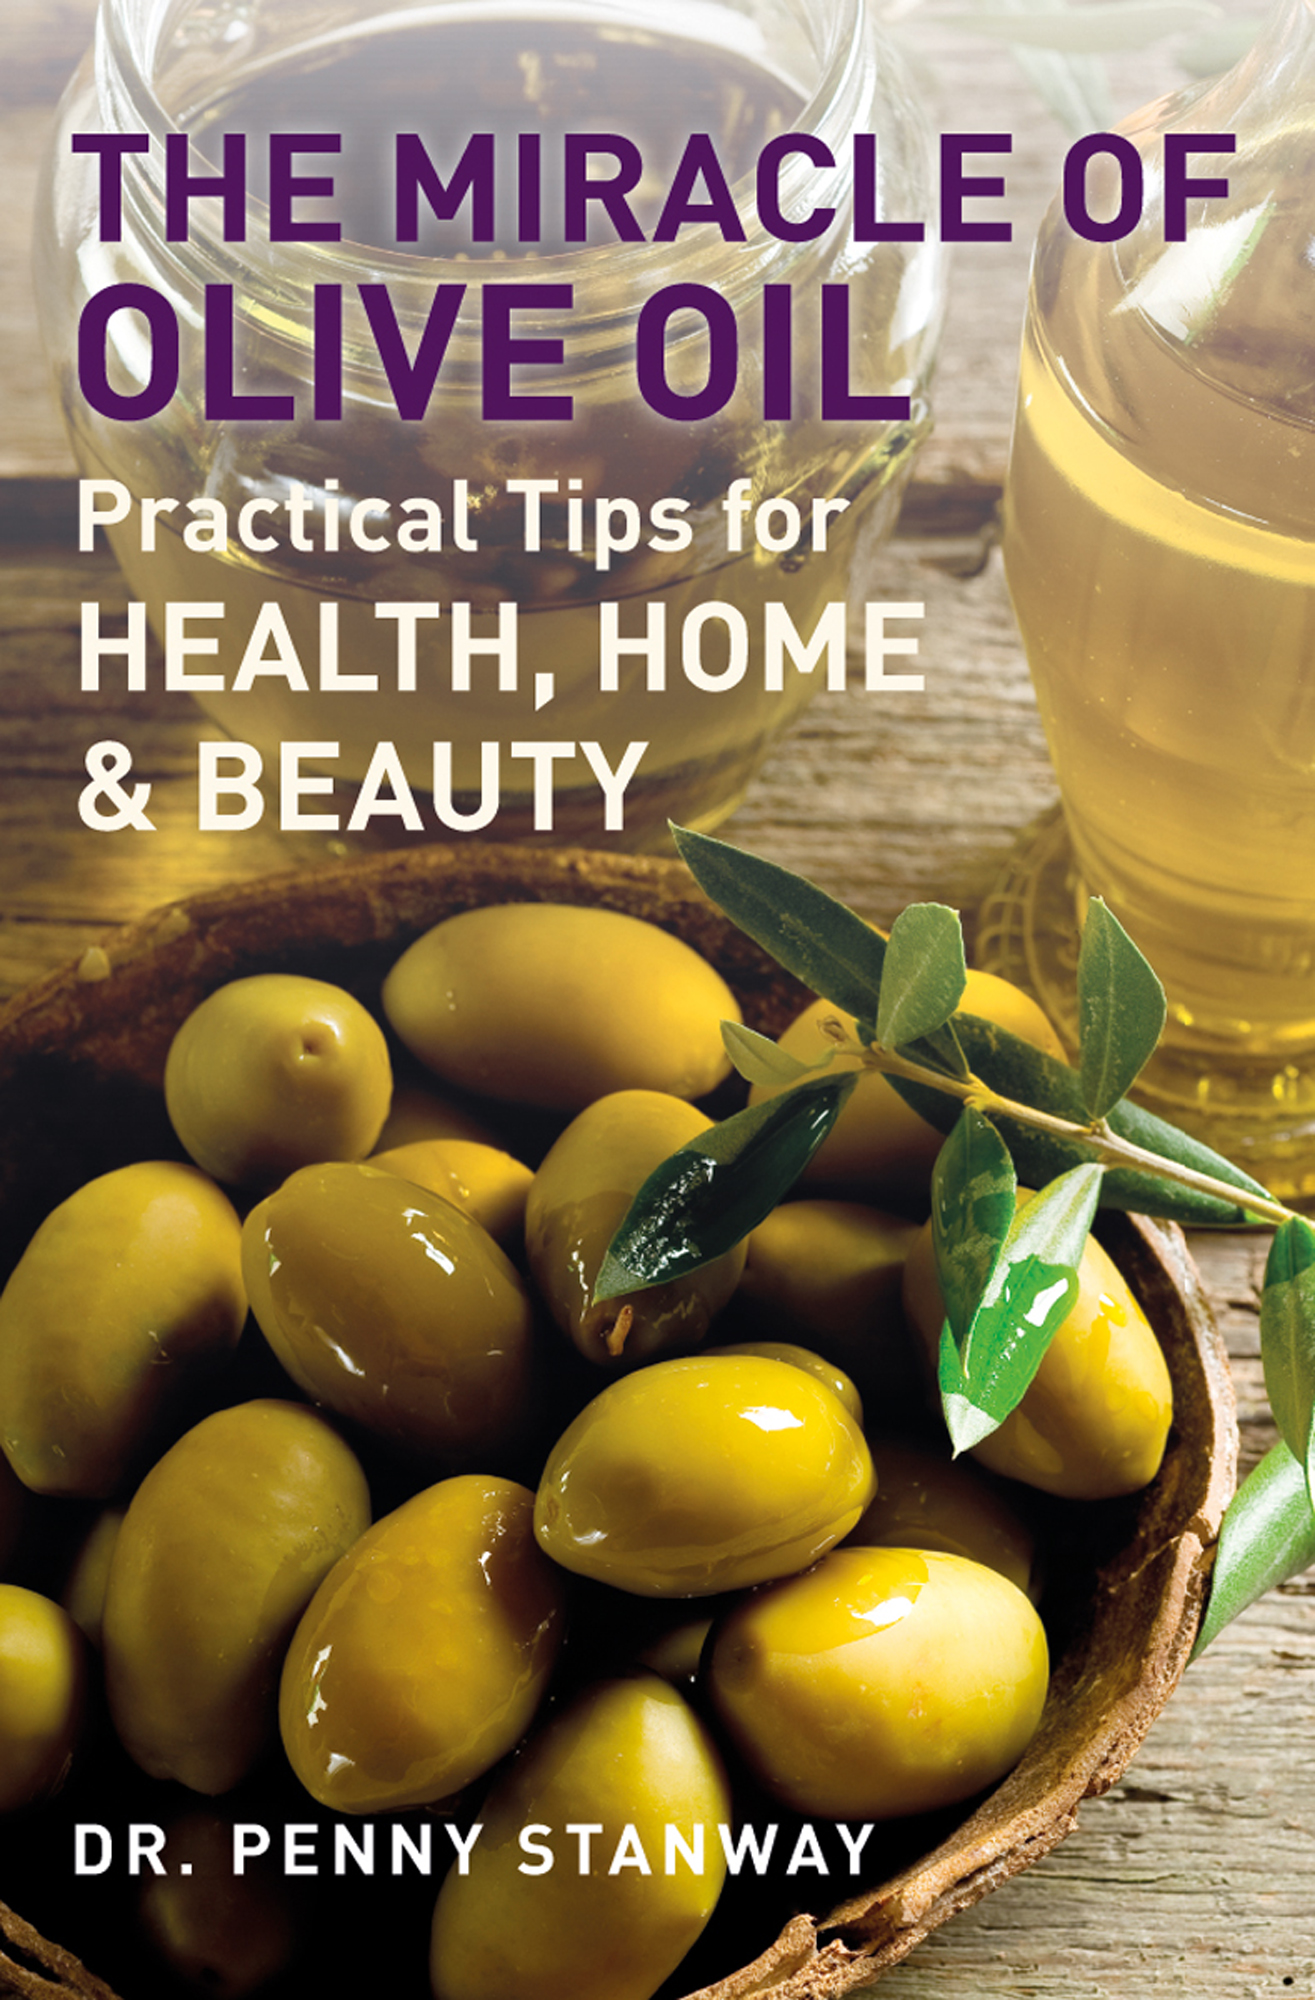 The Miracle of Olive Oil - Practical Tips for Health,  Home & Beauty